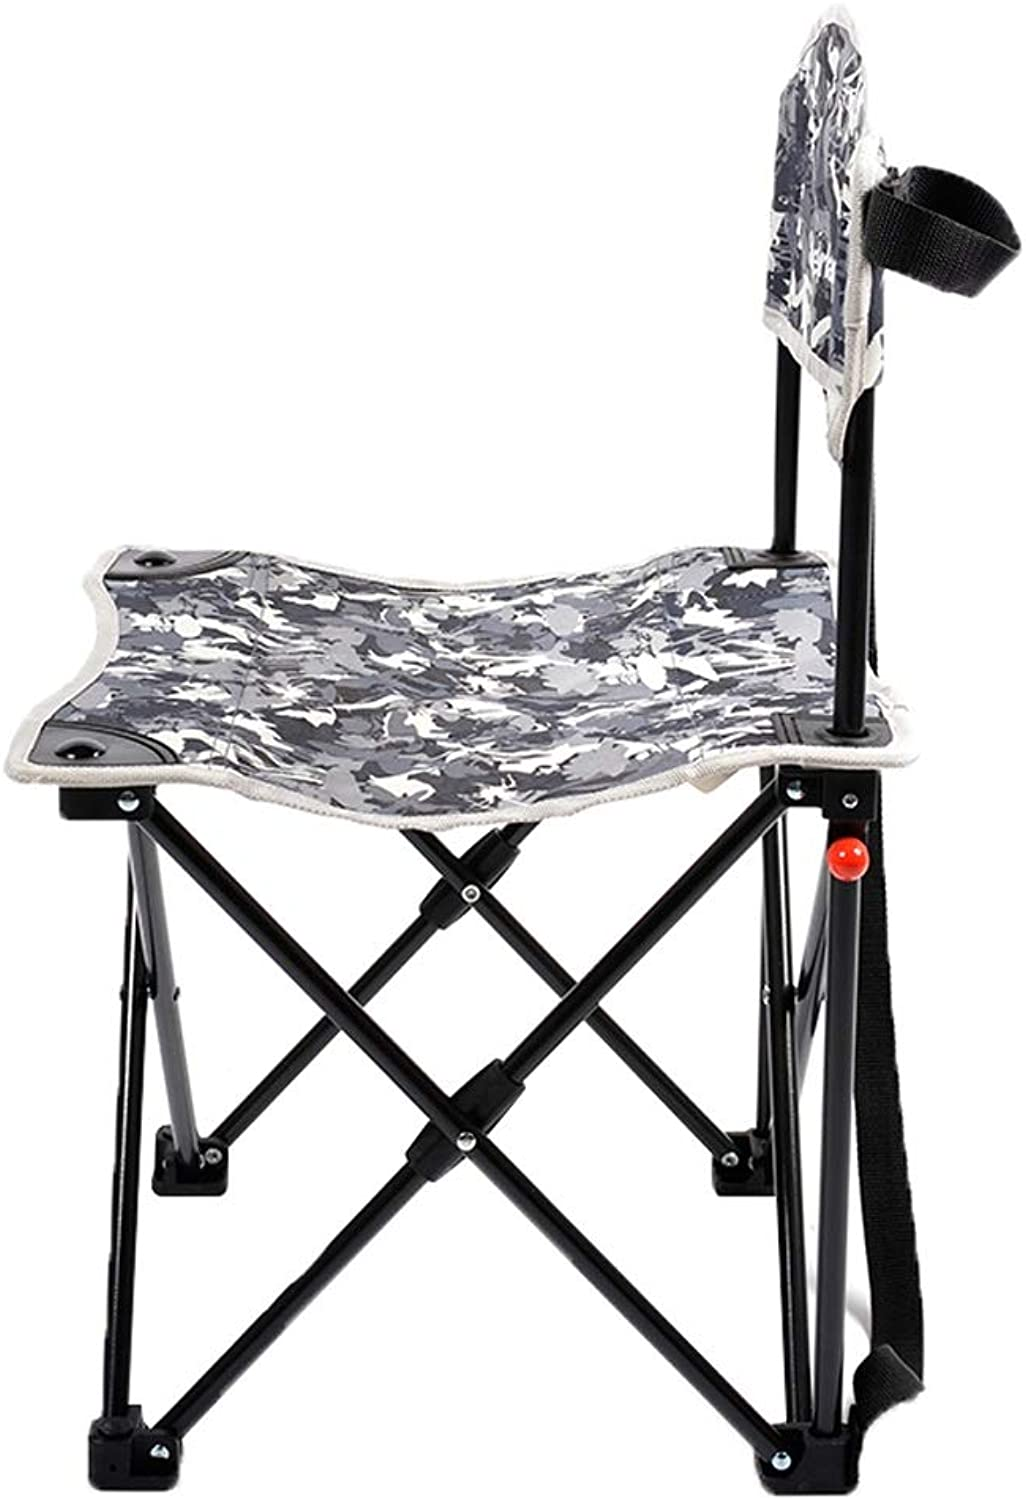 Nevy Camping Folding Chairs Ultralight Portable Small Stool for Fishing Beach Picnic Festival Concert,Camouflage